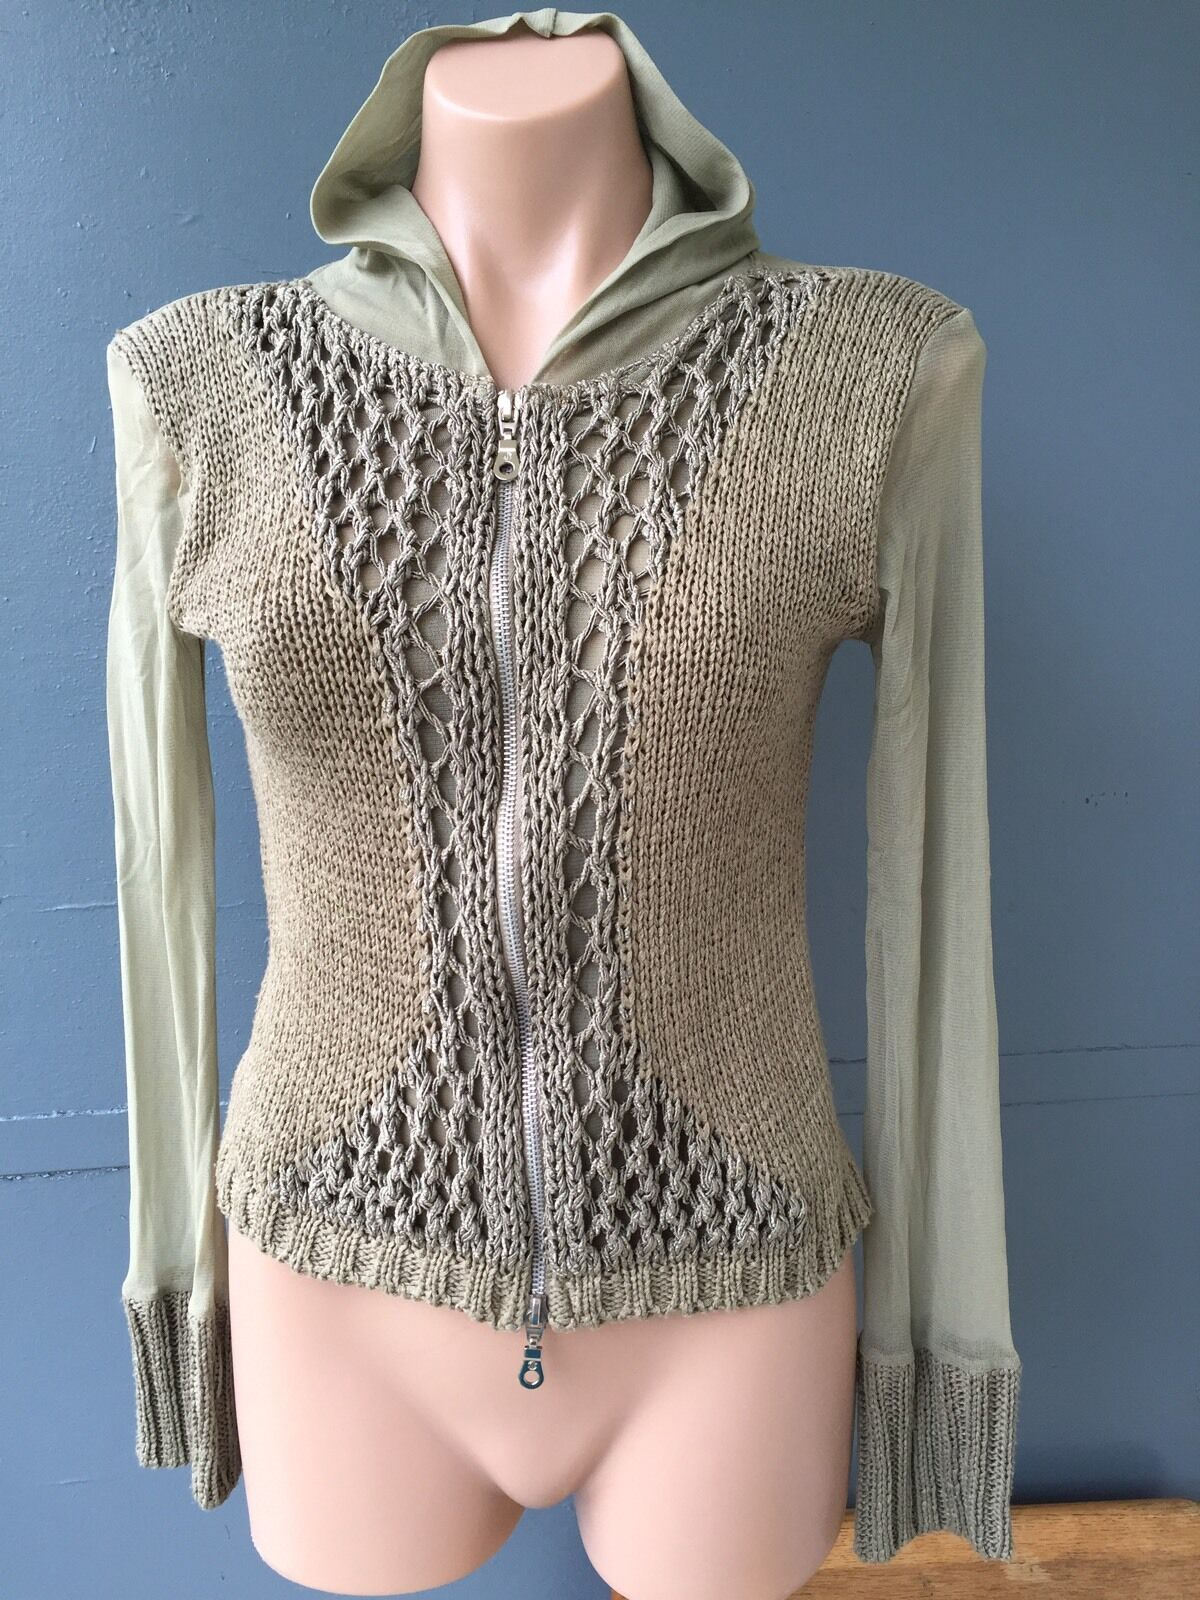 NWOT TRIBECA olive green knit mesh Blouse sz.S hood,front Zipper,made In